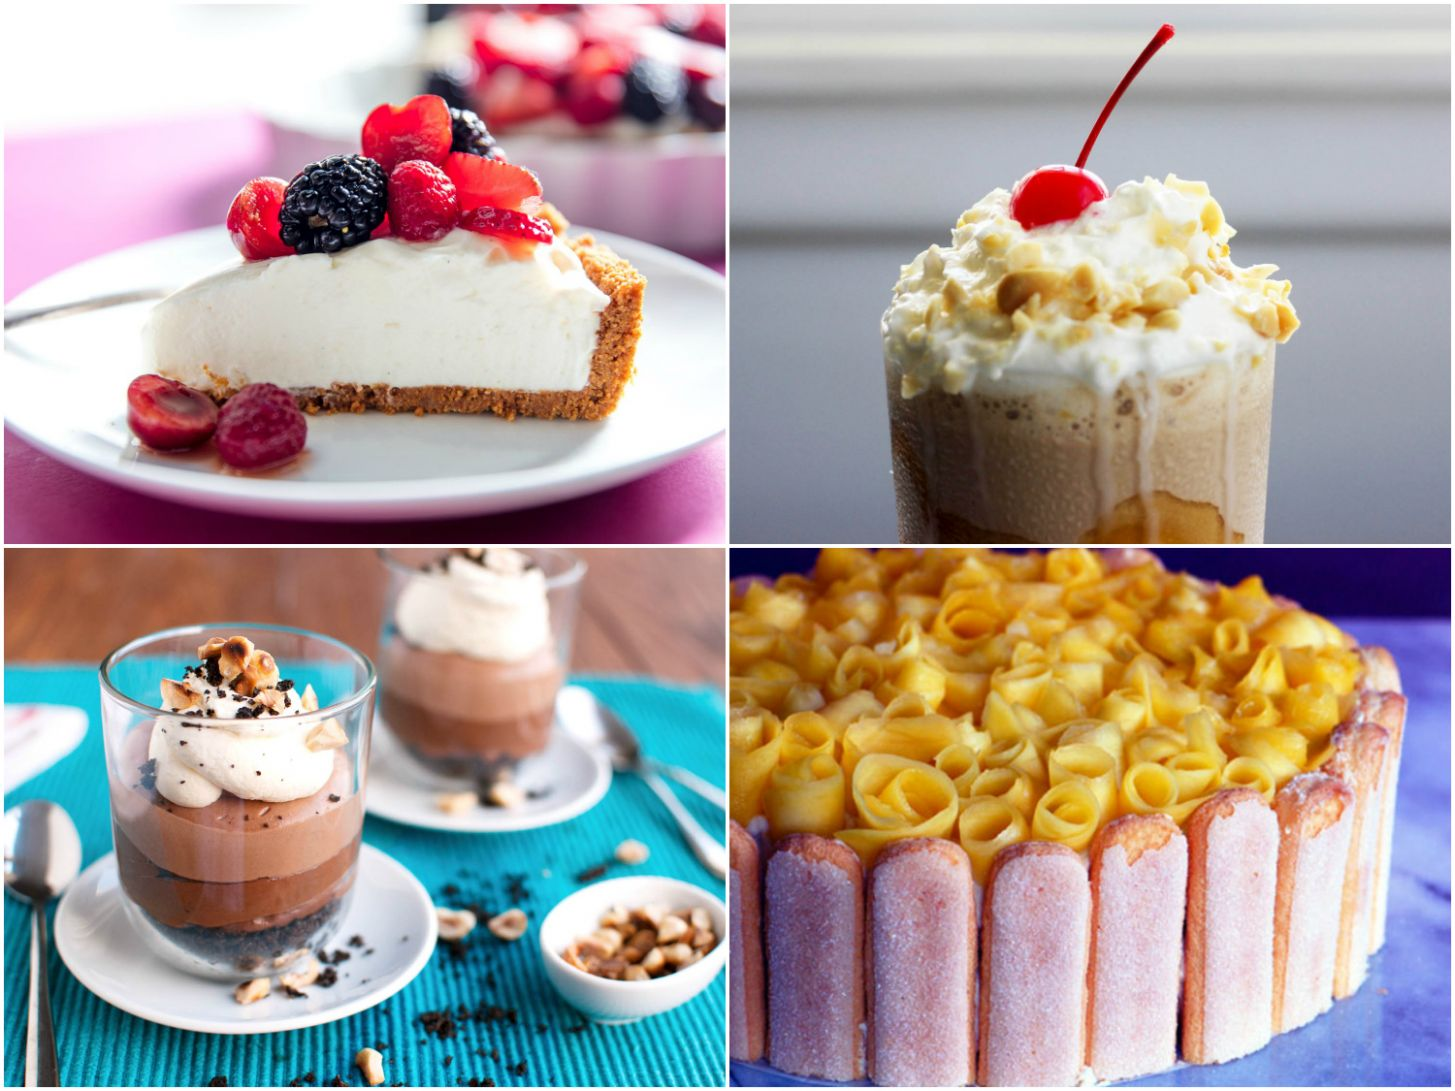 12 No-Bake Dessert Recipes for a Cool Summer Kitchen | Serious Eats - Summer Recipes Baking